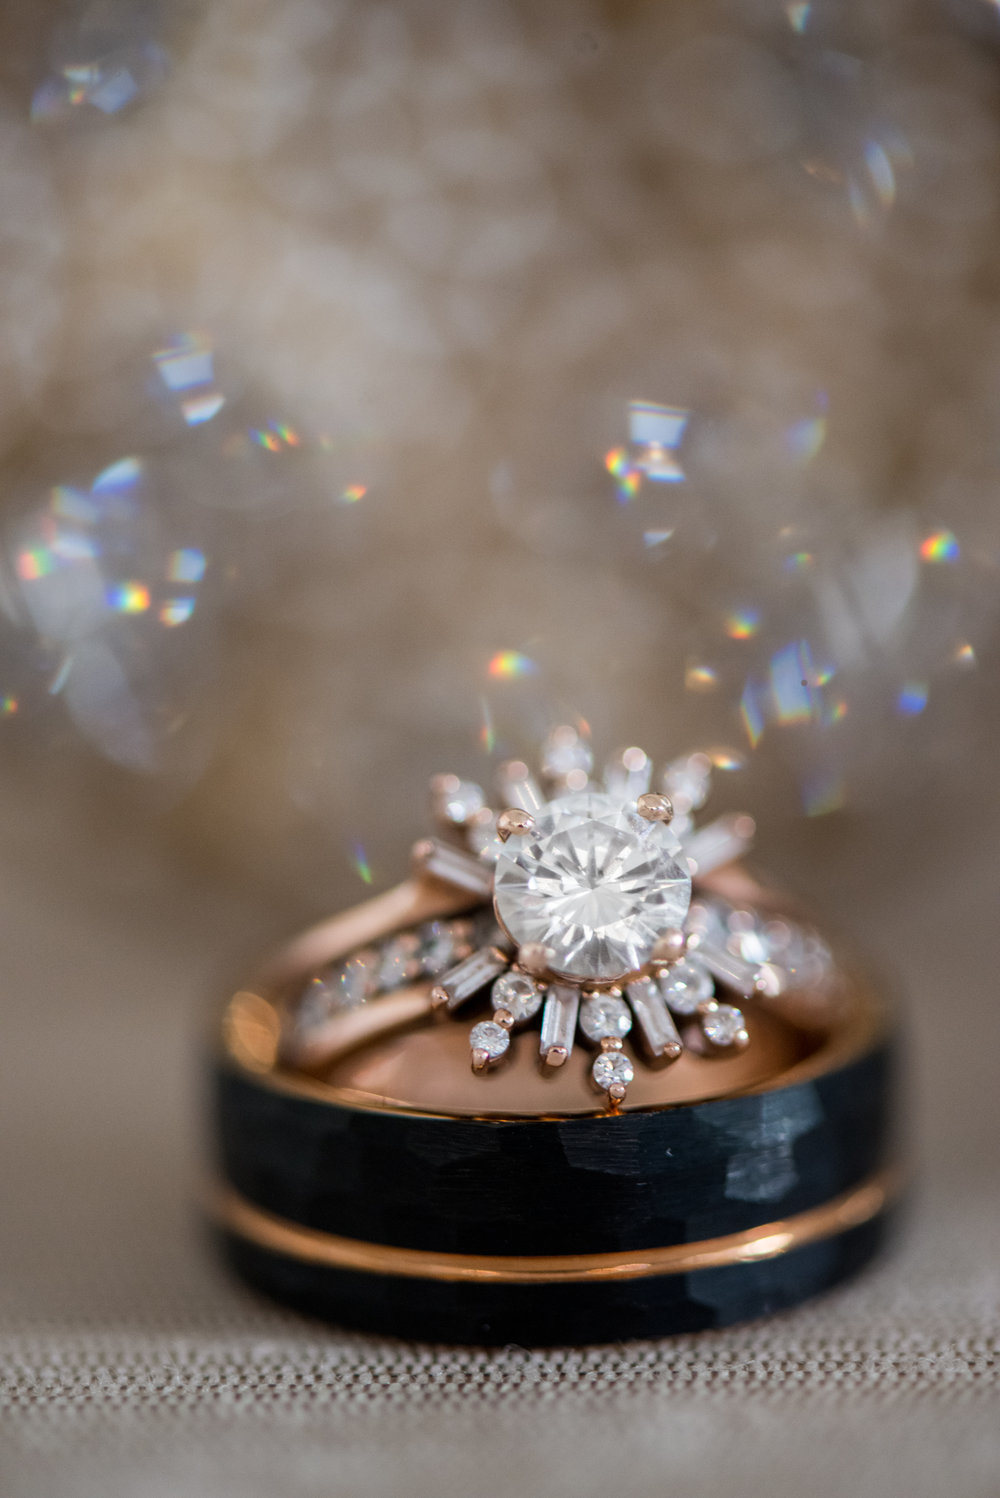 Best of Ring Pictures 2018